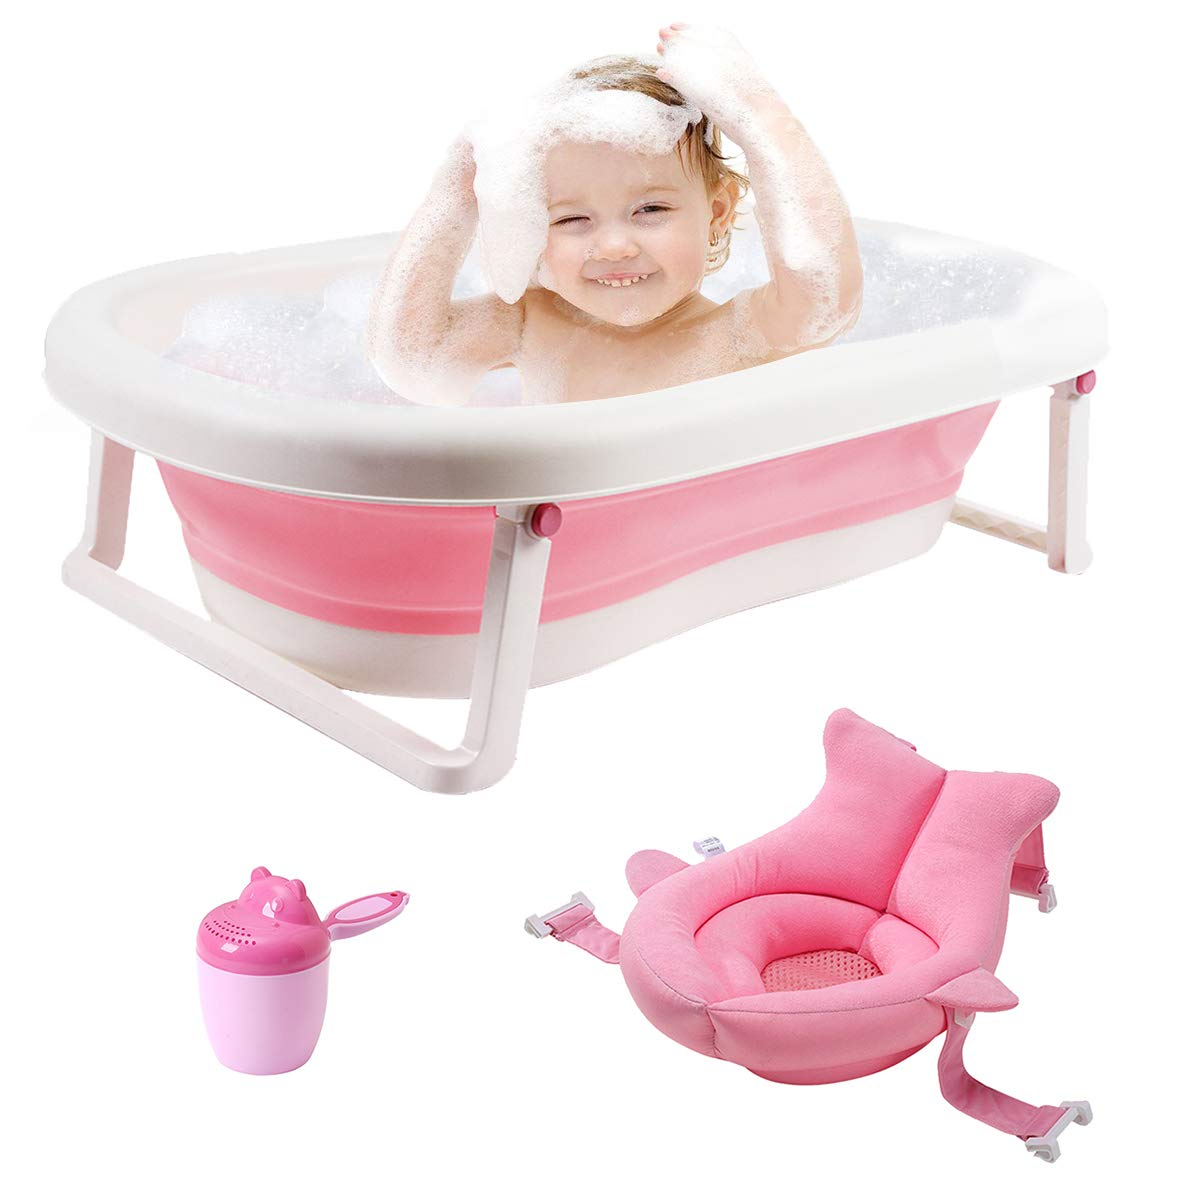 Green tub+Cushion 3-in-1 Baby Bathtub Portable Collapsible Toddler Bath tub Foldable Infant Shower Basin Anti Slip Skid Proof with Baby Cushion /& Water Rinser Cup for 0-5 Years